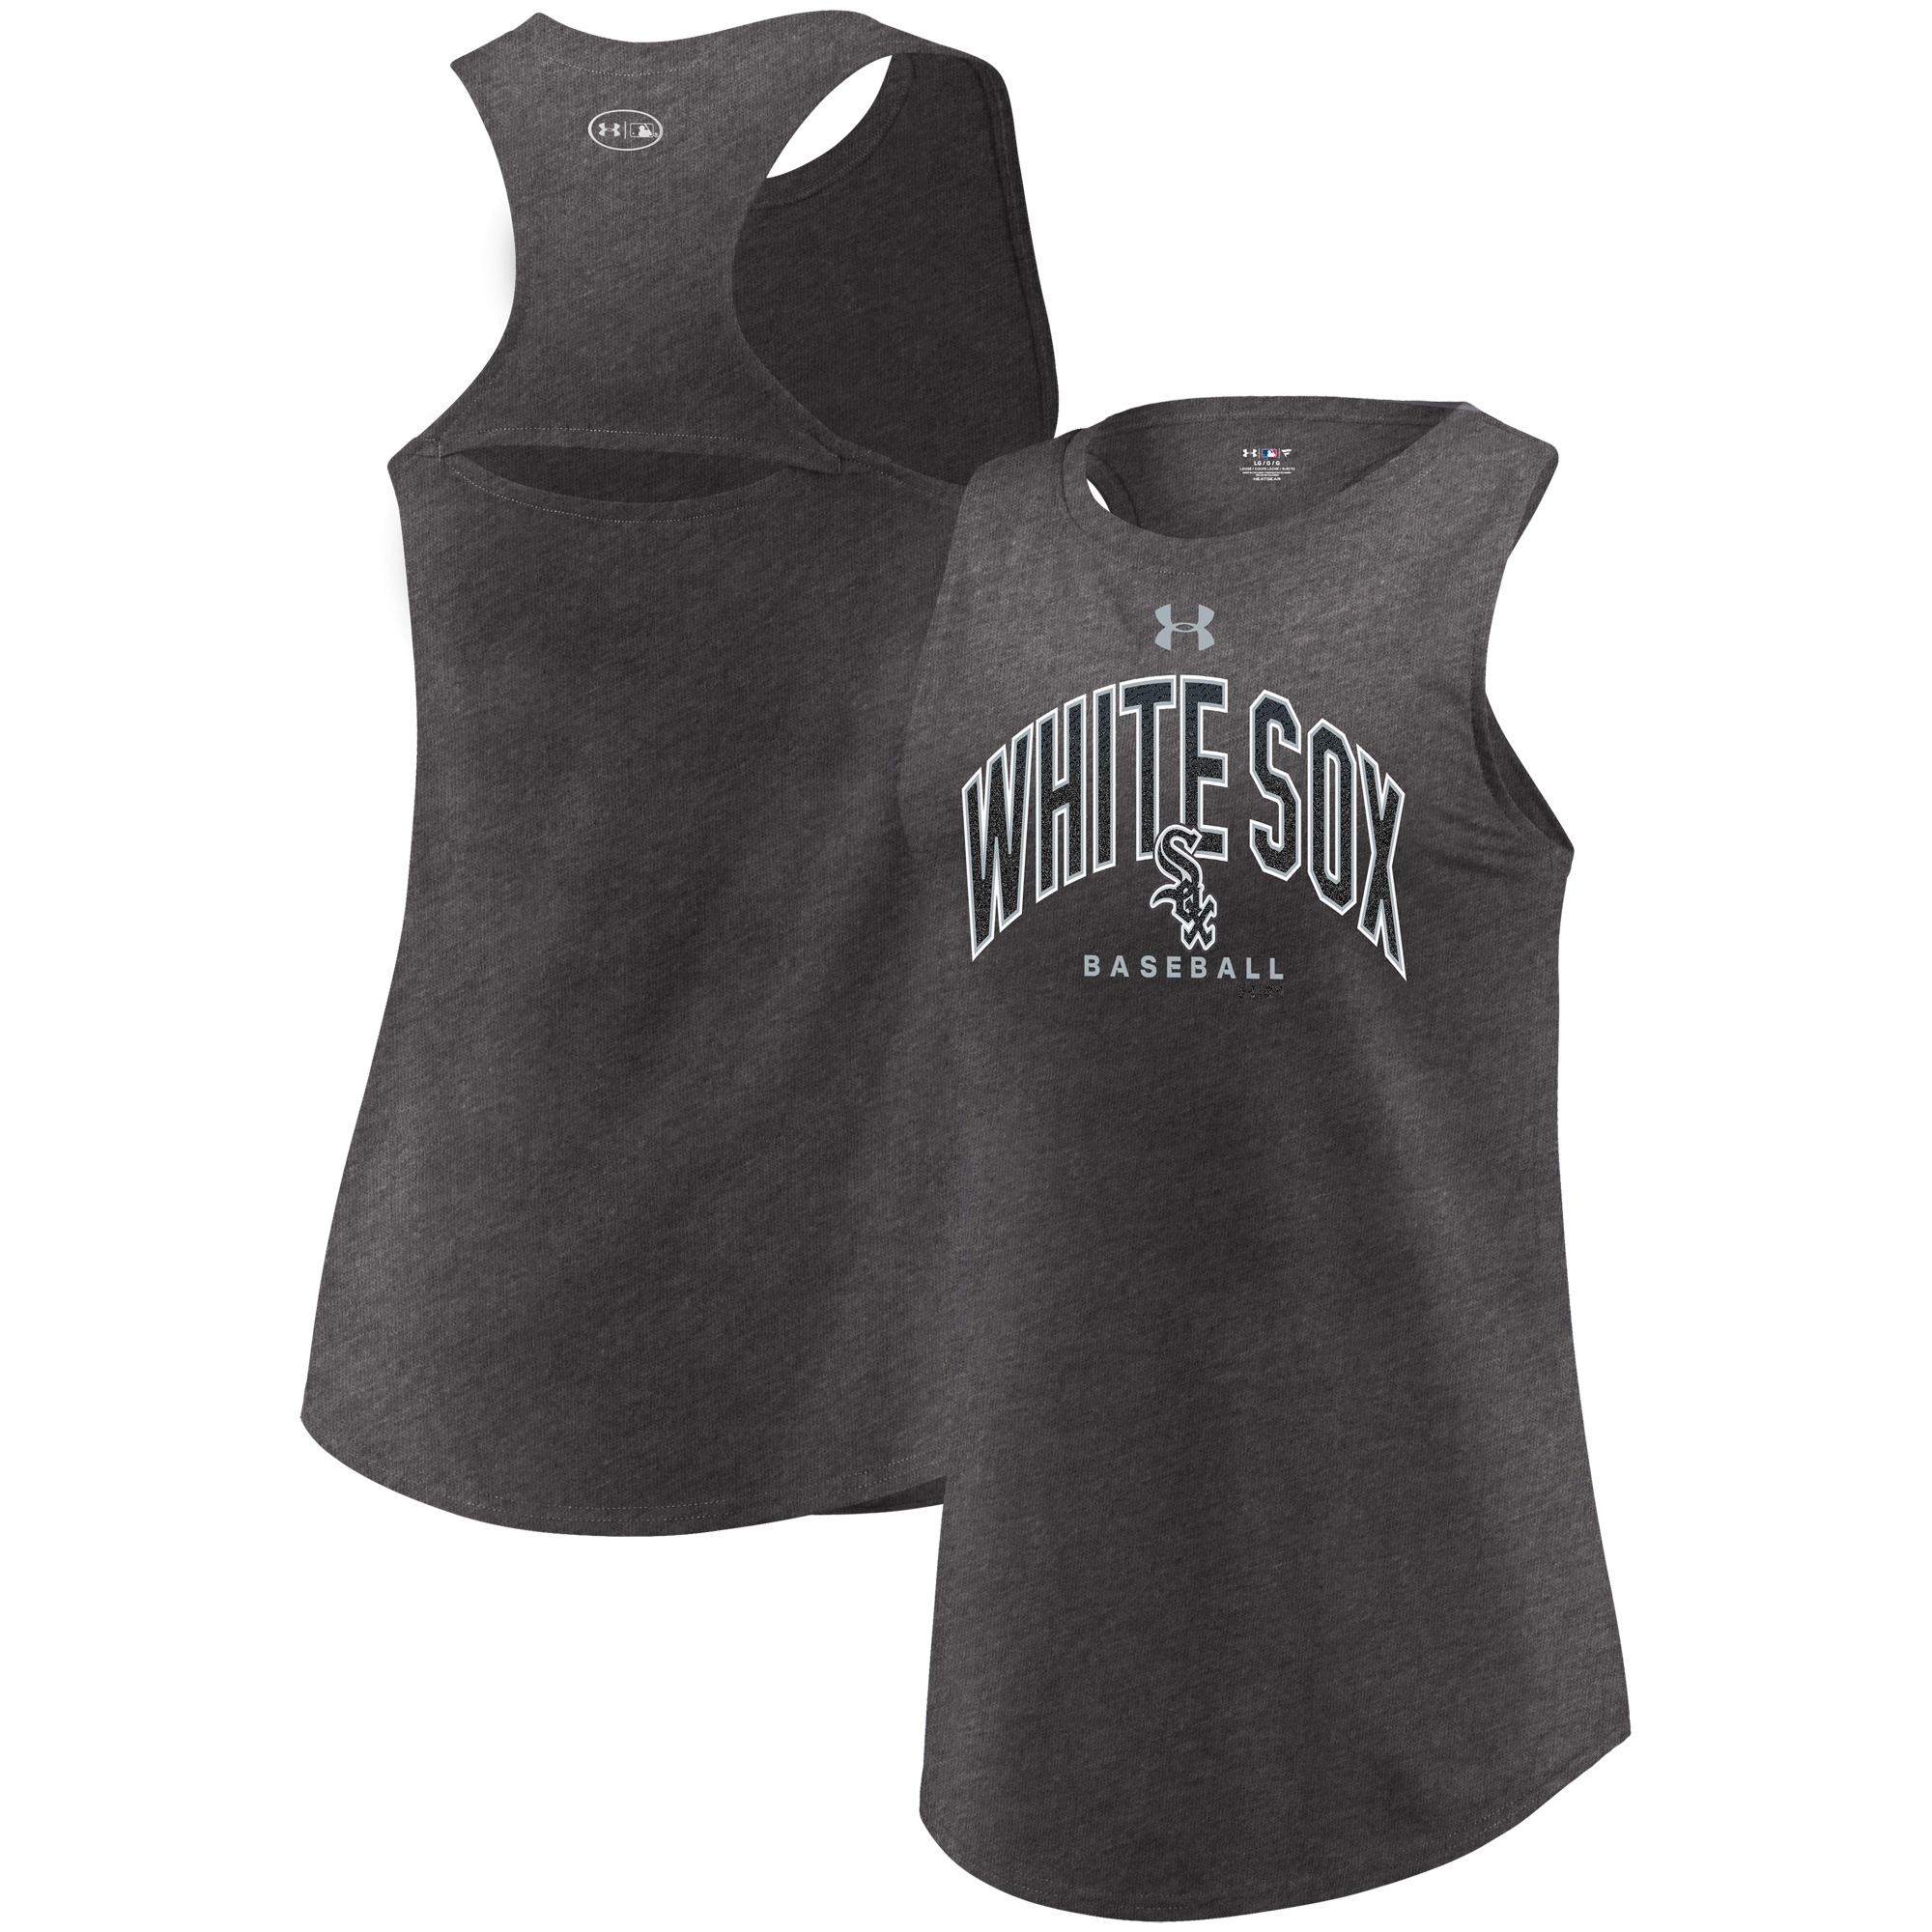 Chicago White Sox Under Armour Women's Passion Reflective Arch Tri-Blend Tank Top - Heathered Charcoal